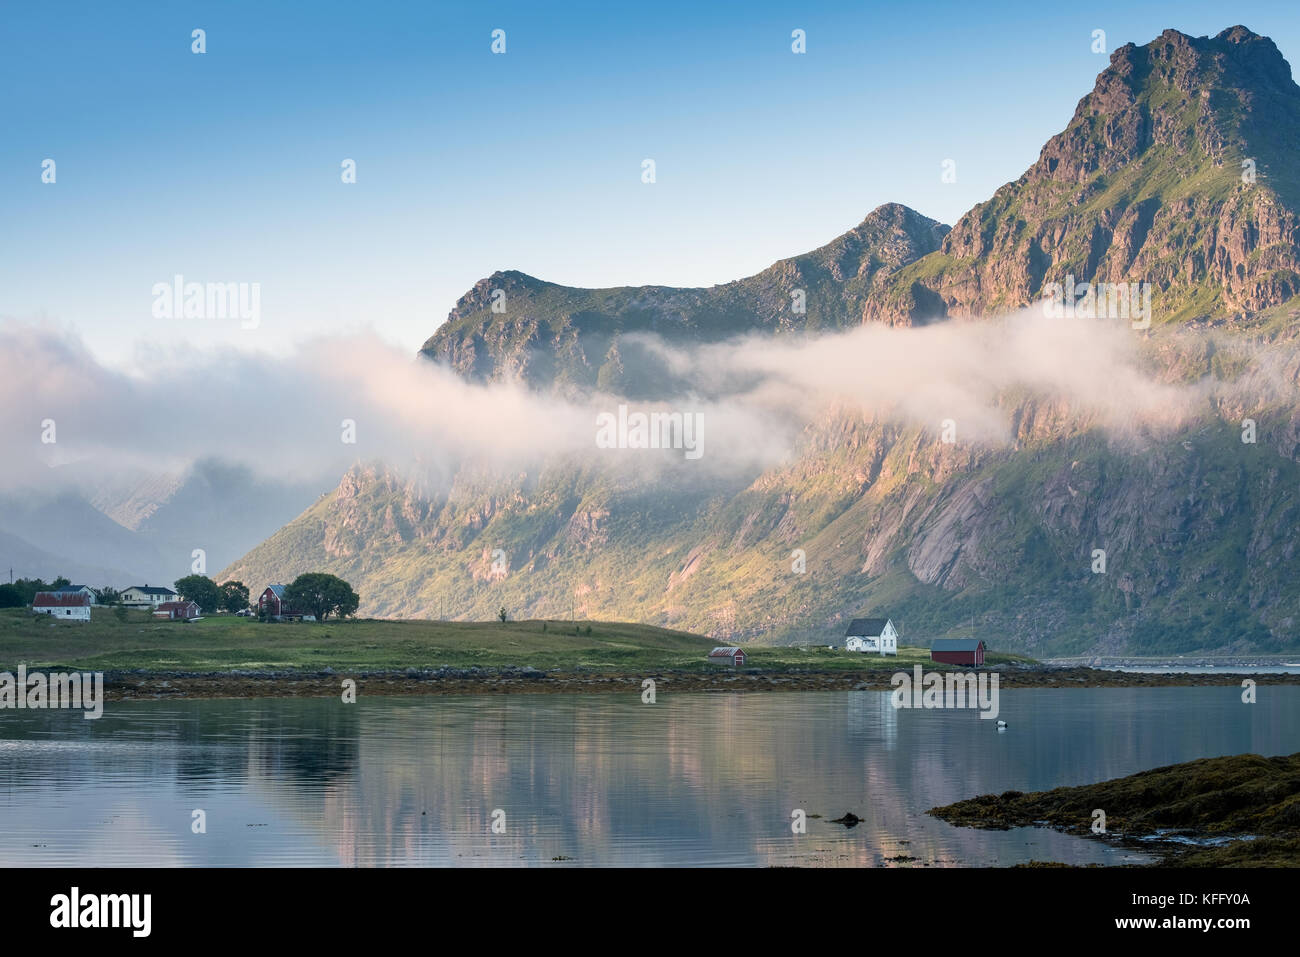 Scenic view with idyllic house and mountains at summer evening in Lofoten, Norway - Stock Image